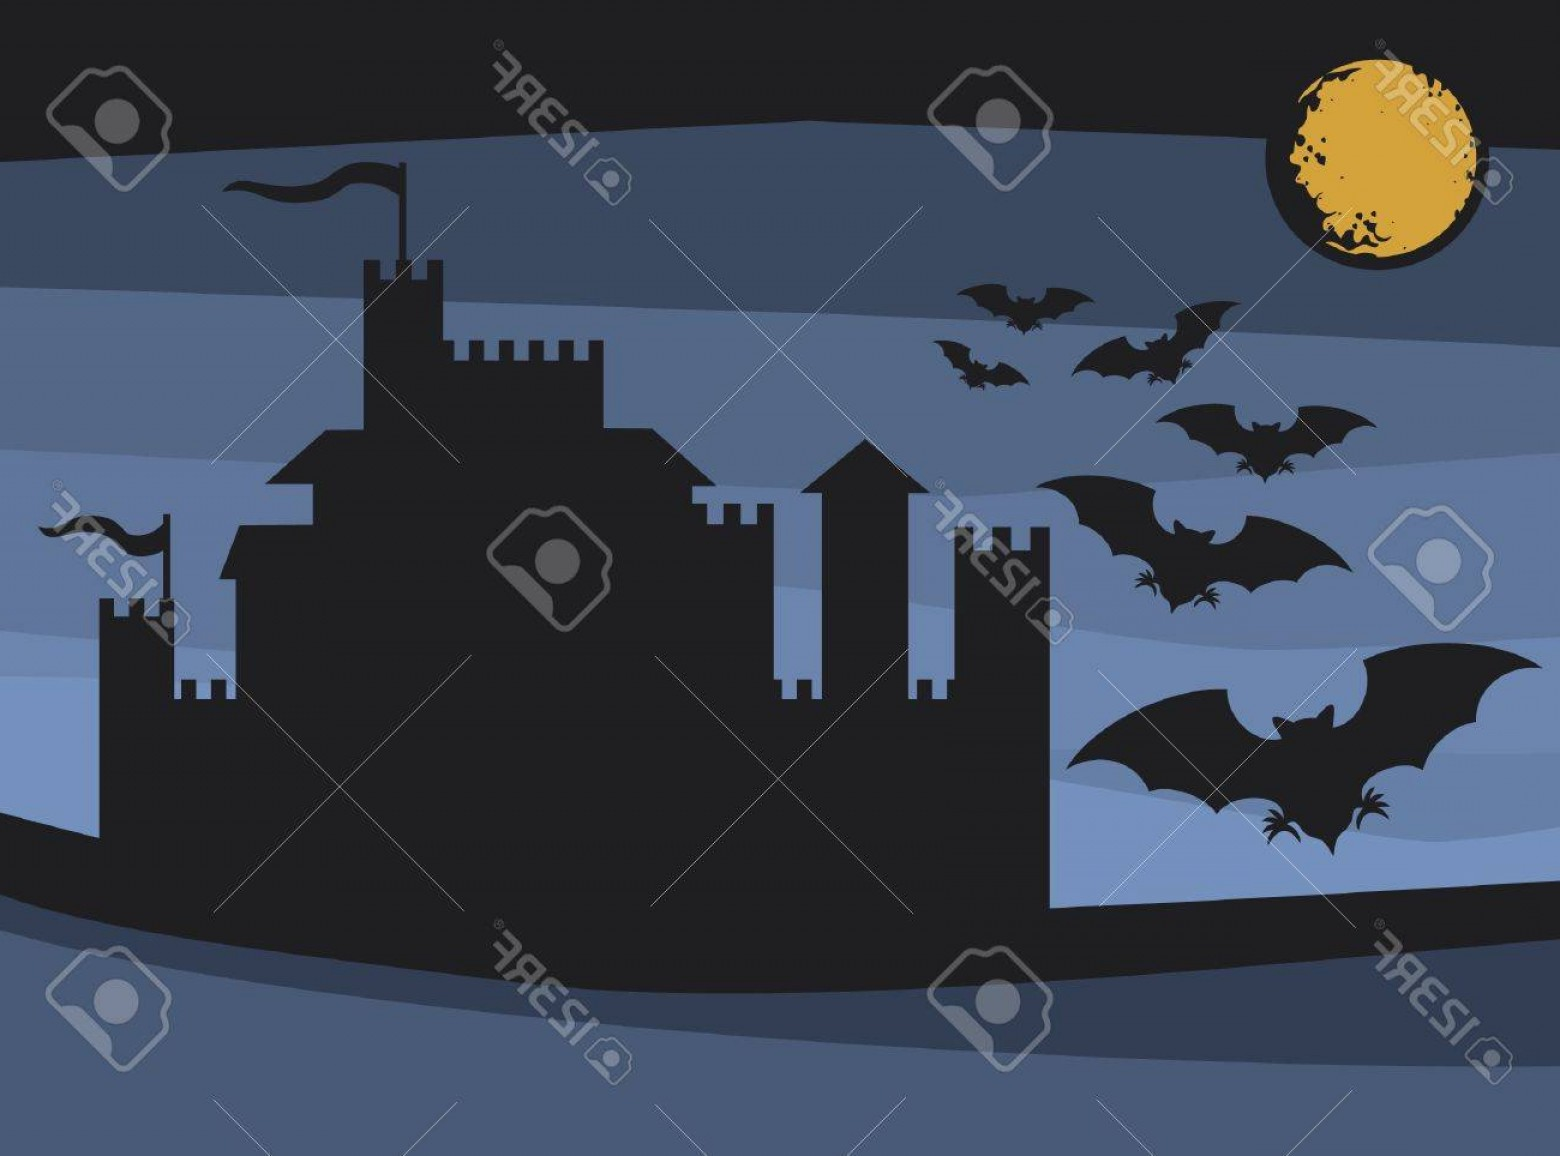 Vectors Fortress Flying: Photobats Flying In The Moonlight And Old Castle Flight Of A Bats Illustrations Of Halloween Night With B